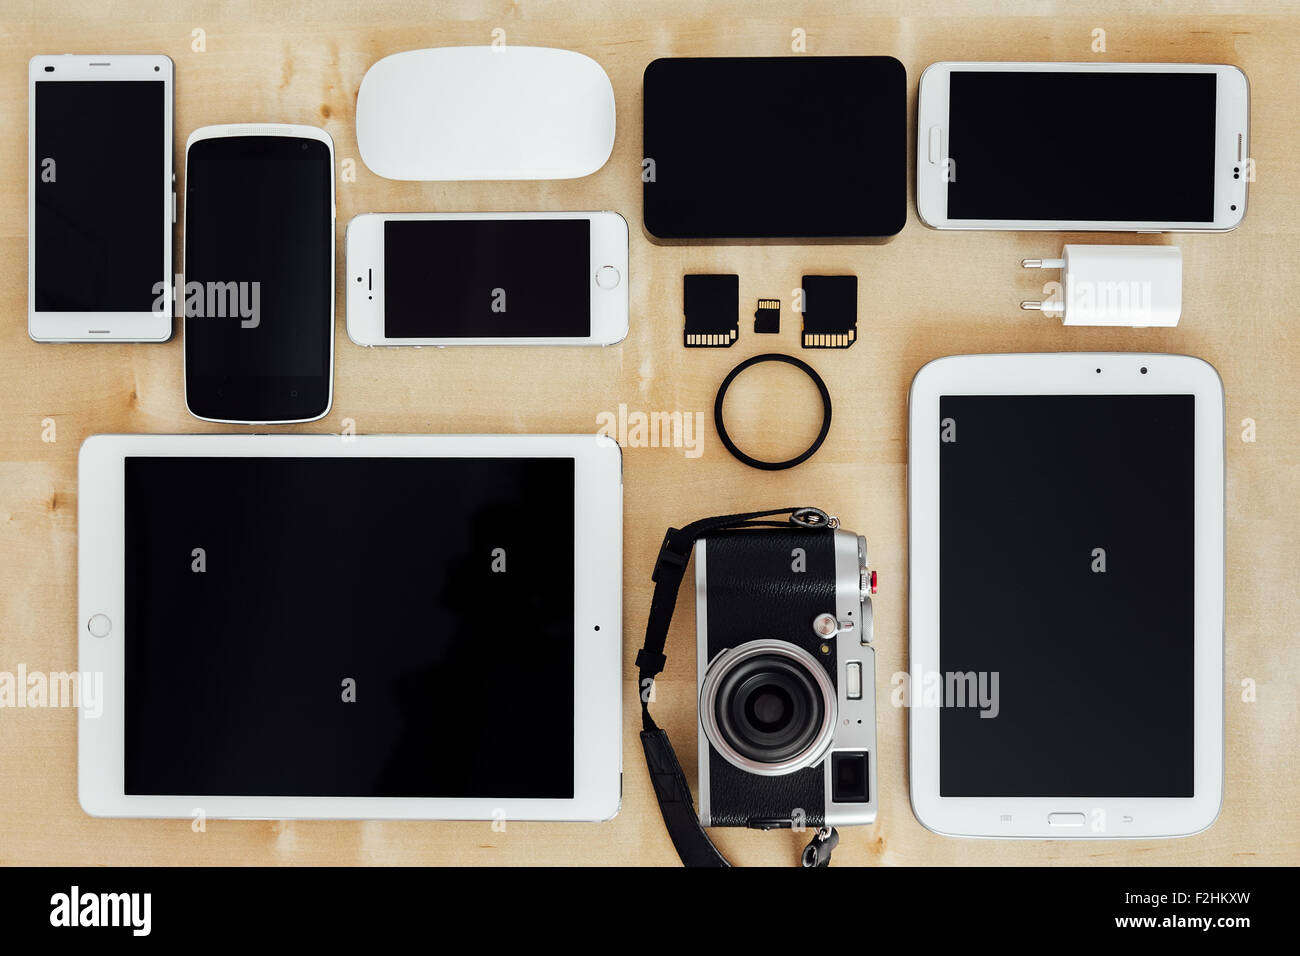 Collection of digital tools of a photographer, with camera, cards, and tablets on a wooden desk - Stock Image